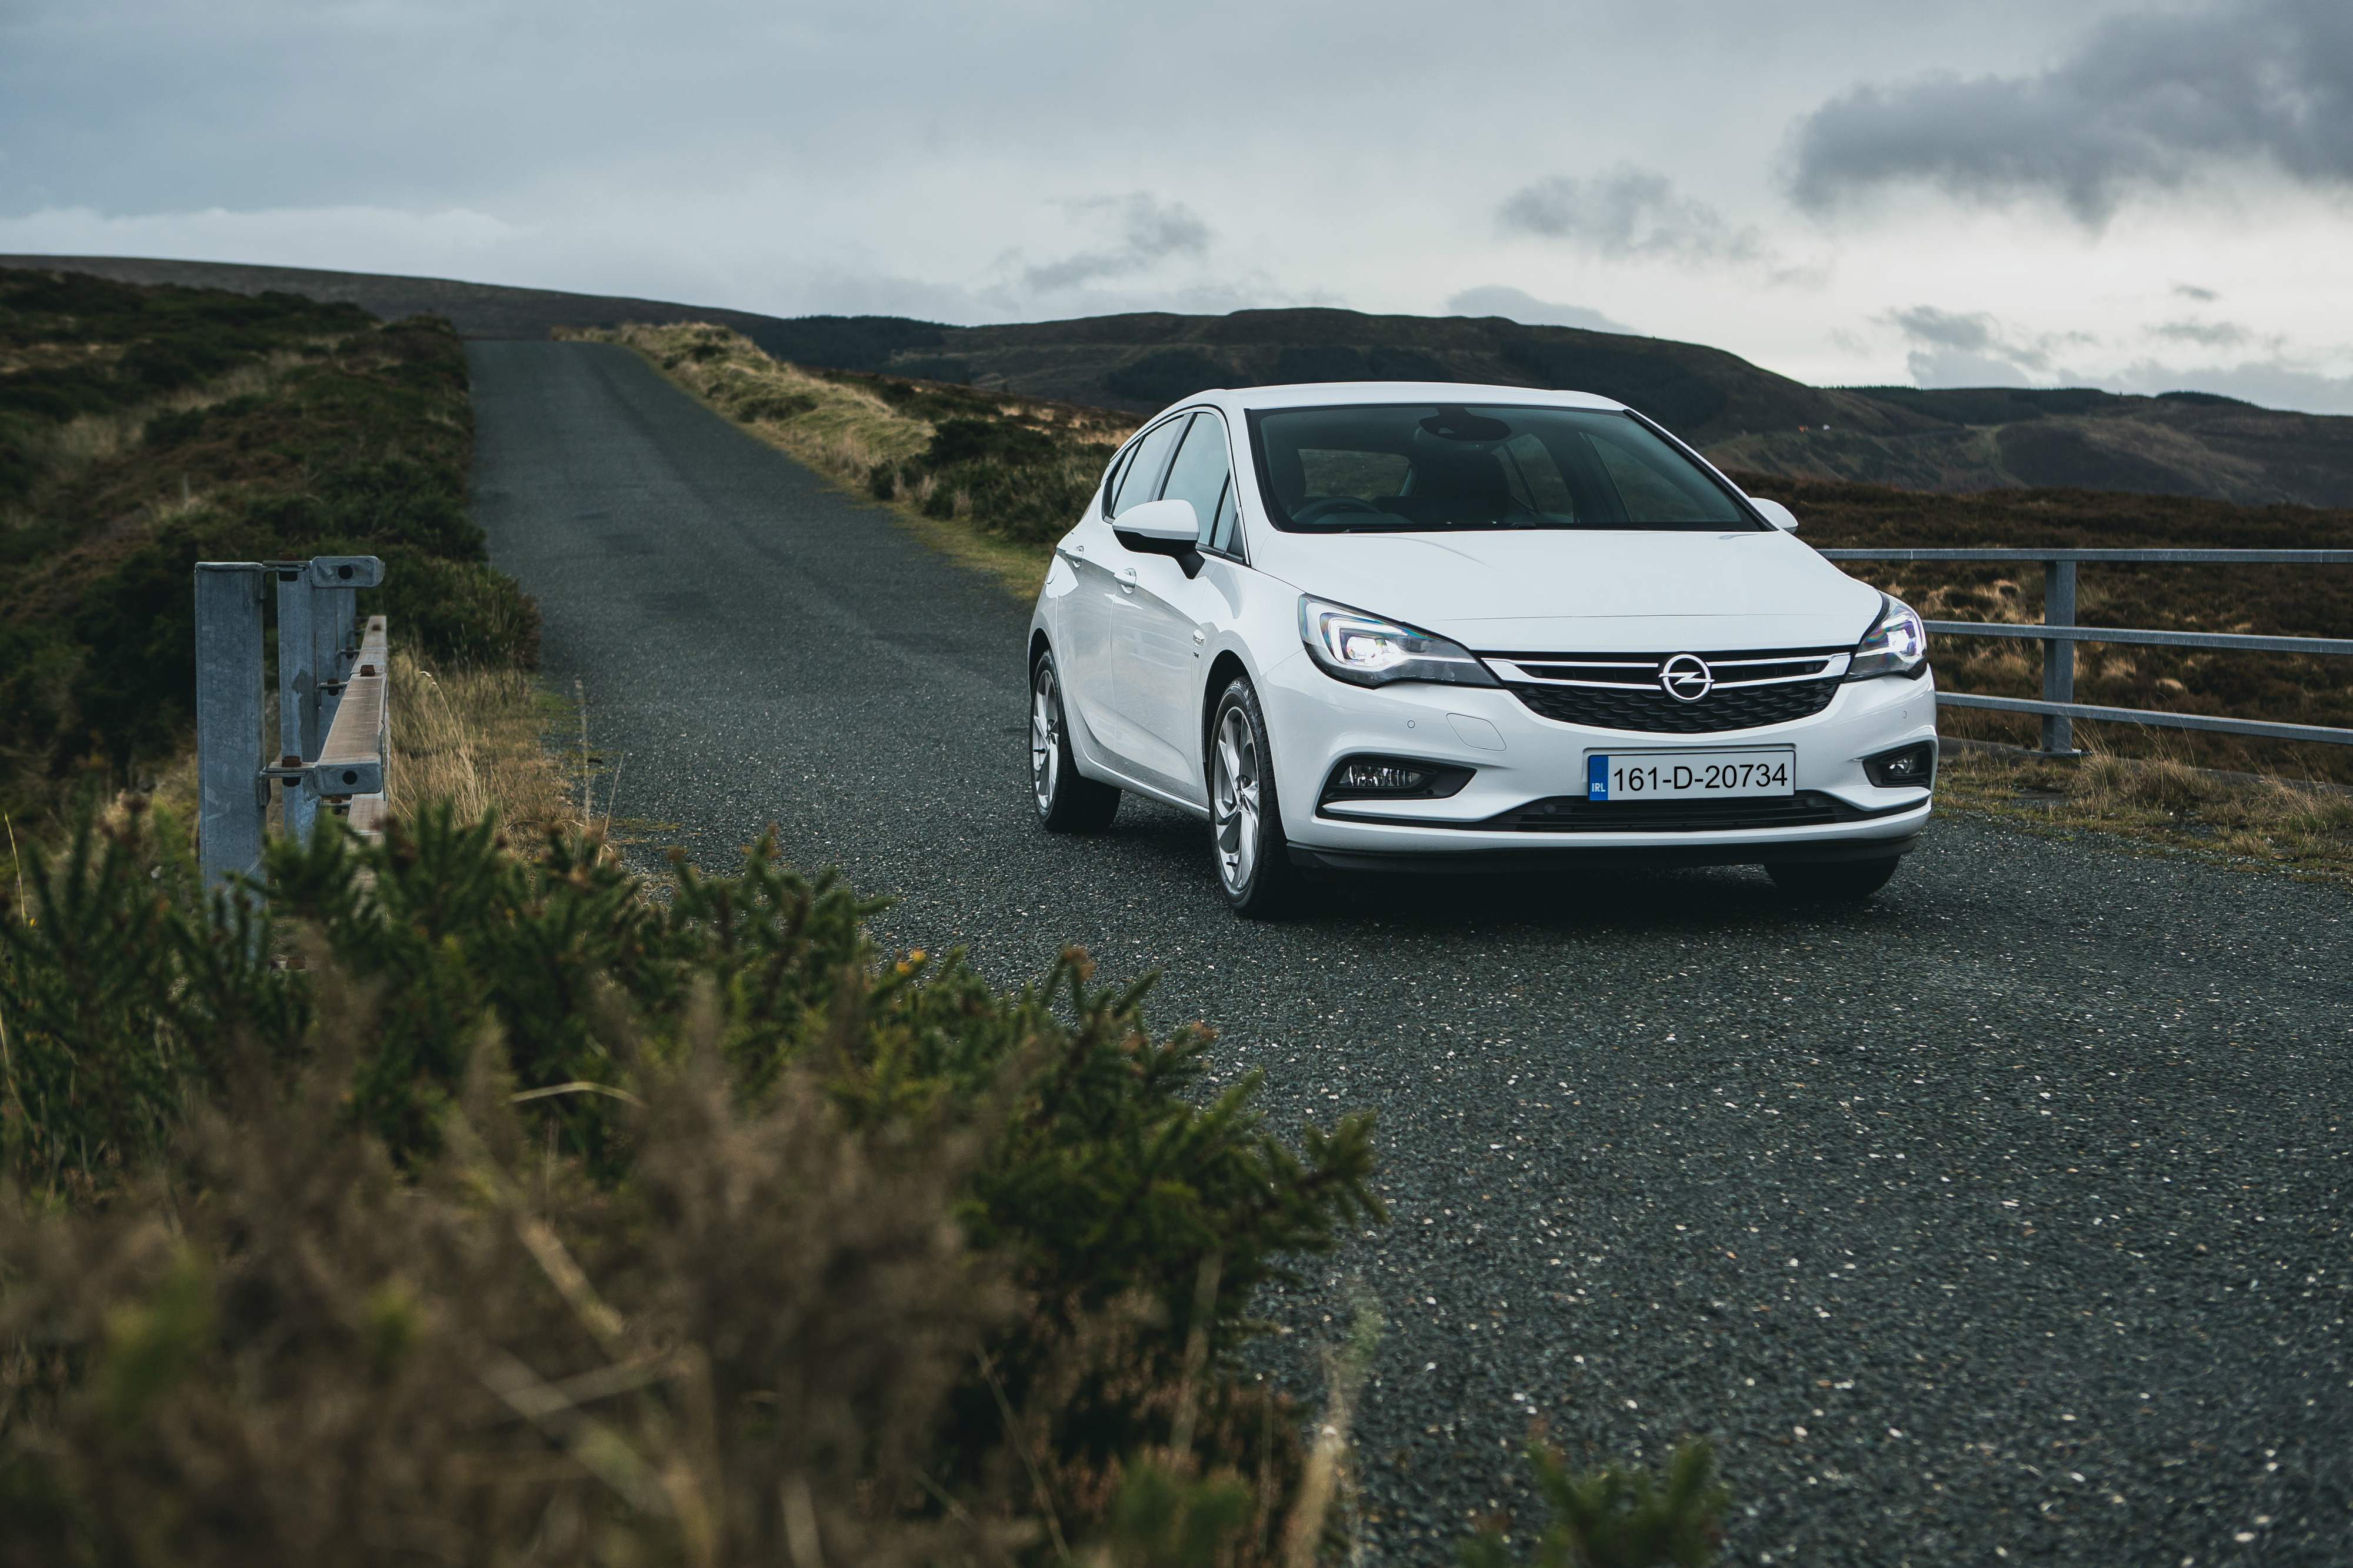 The Opel Astra was Ireland's bestselling car in June 2019!